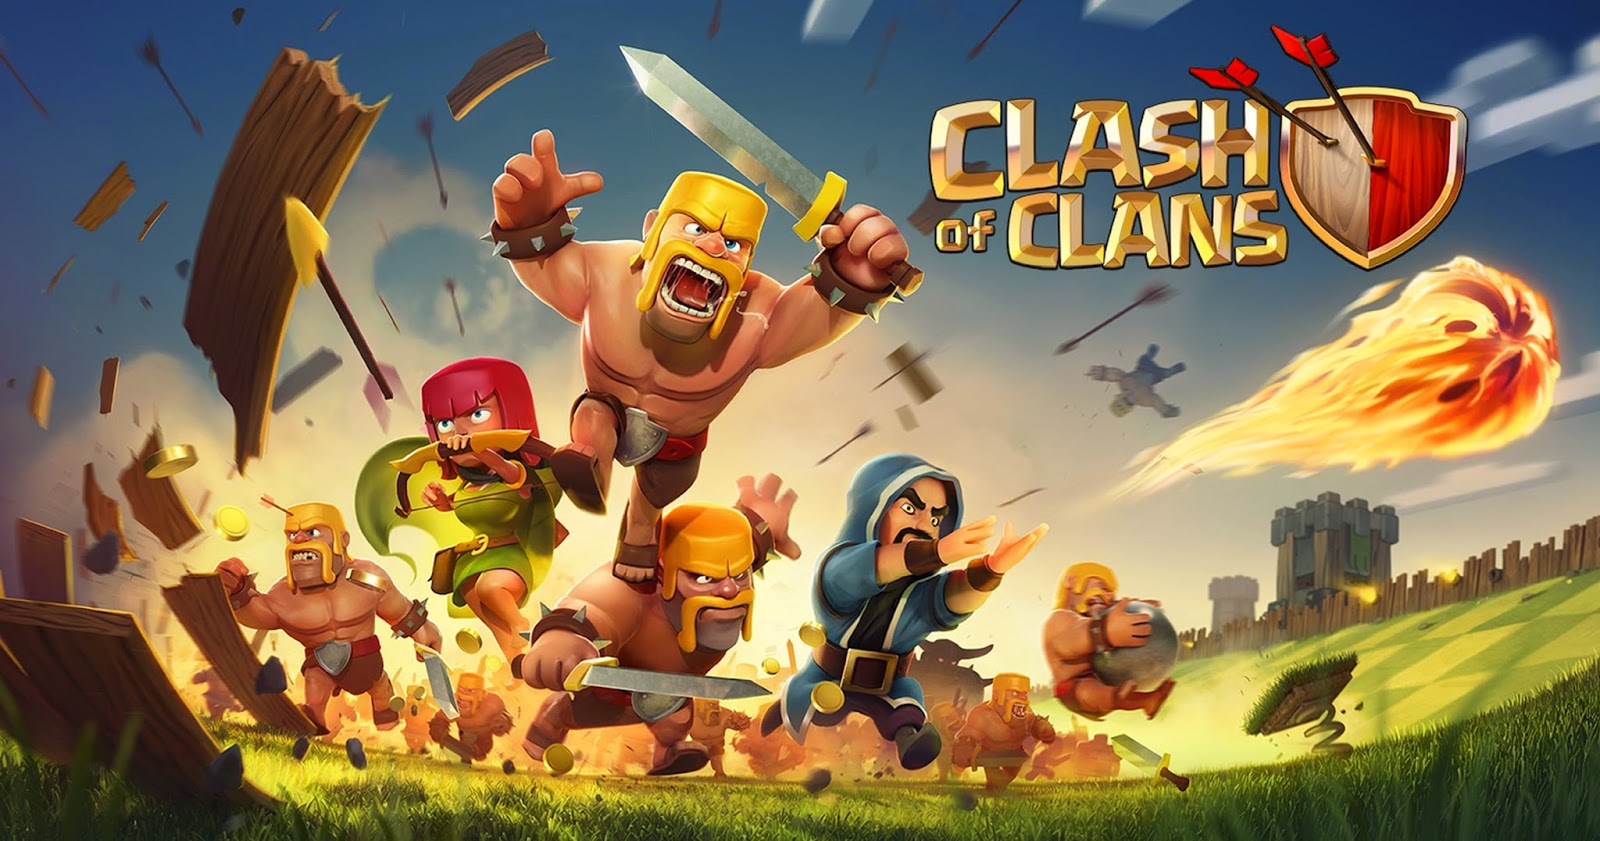 WALLPAPER GAME CLASH OF CLANS Gambar Kartun Lucu Dan Wallpaper